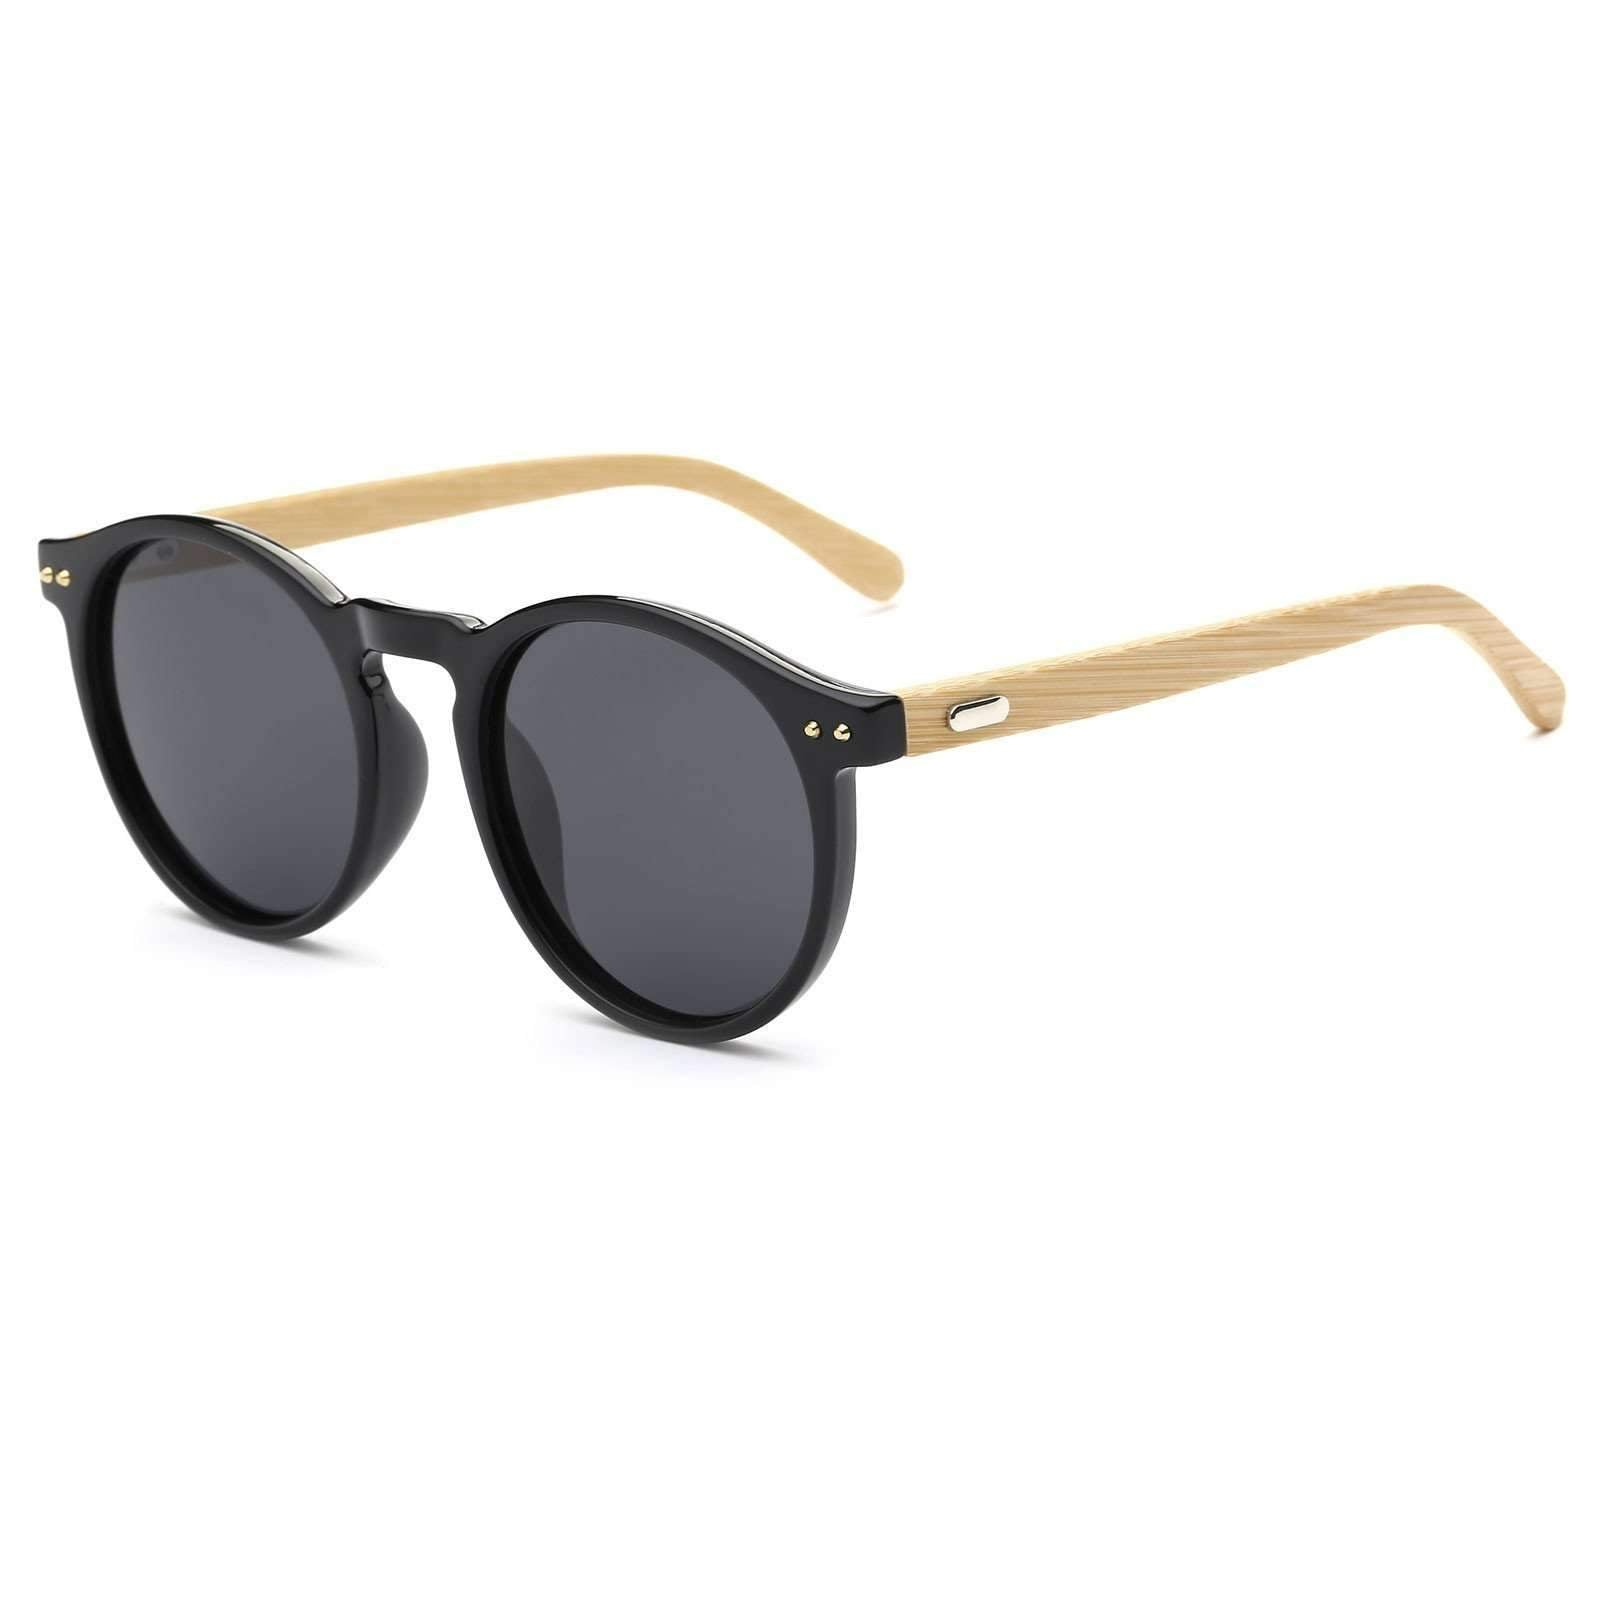 8127 - Retro Round Rim Dark Lens Wood Sunglasses